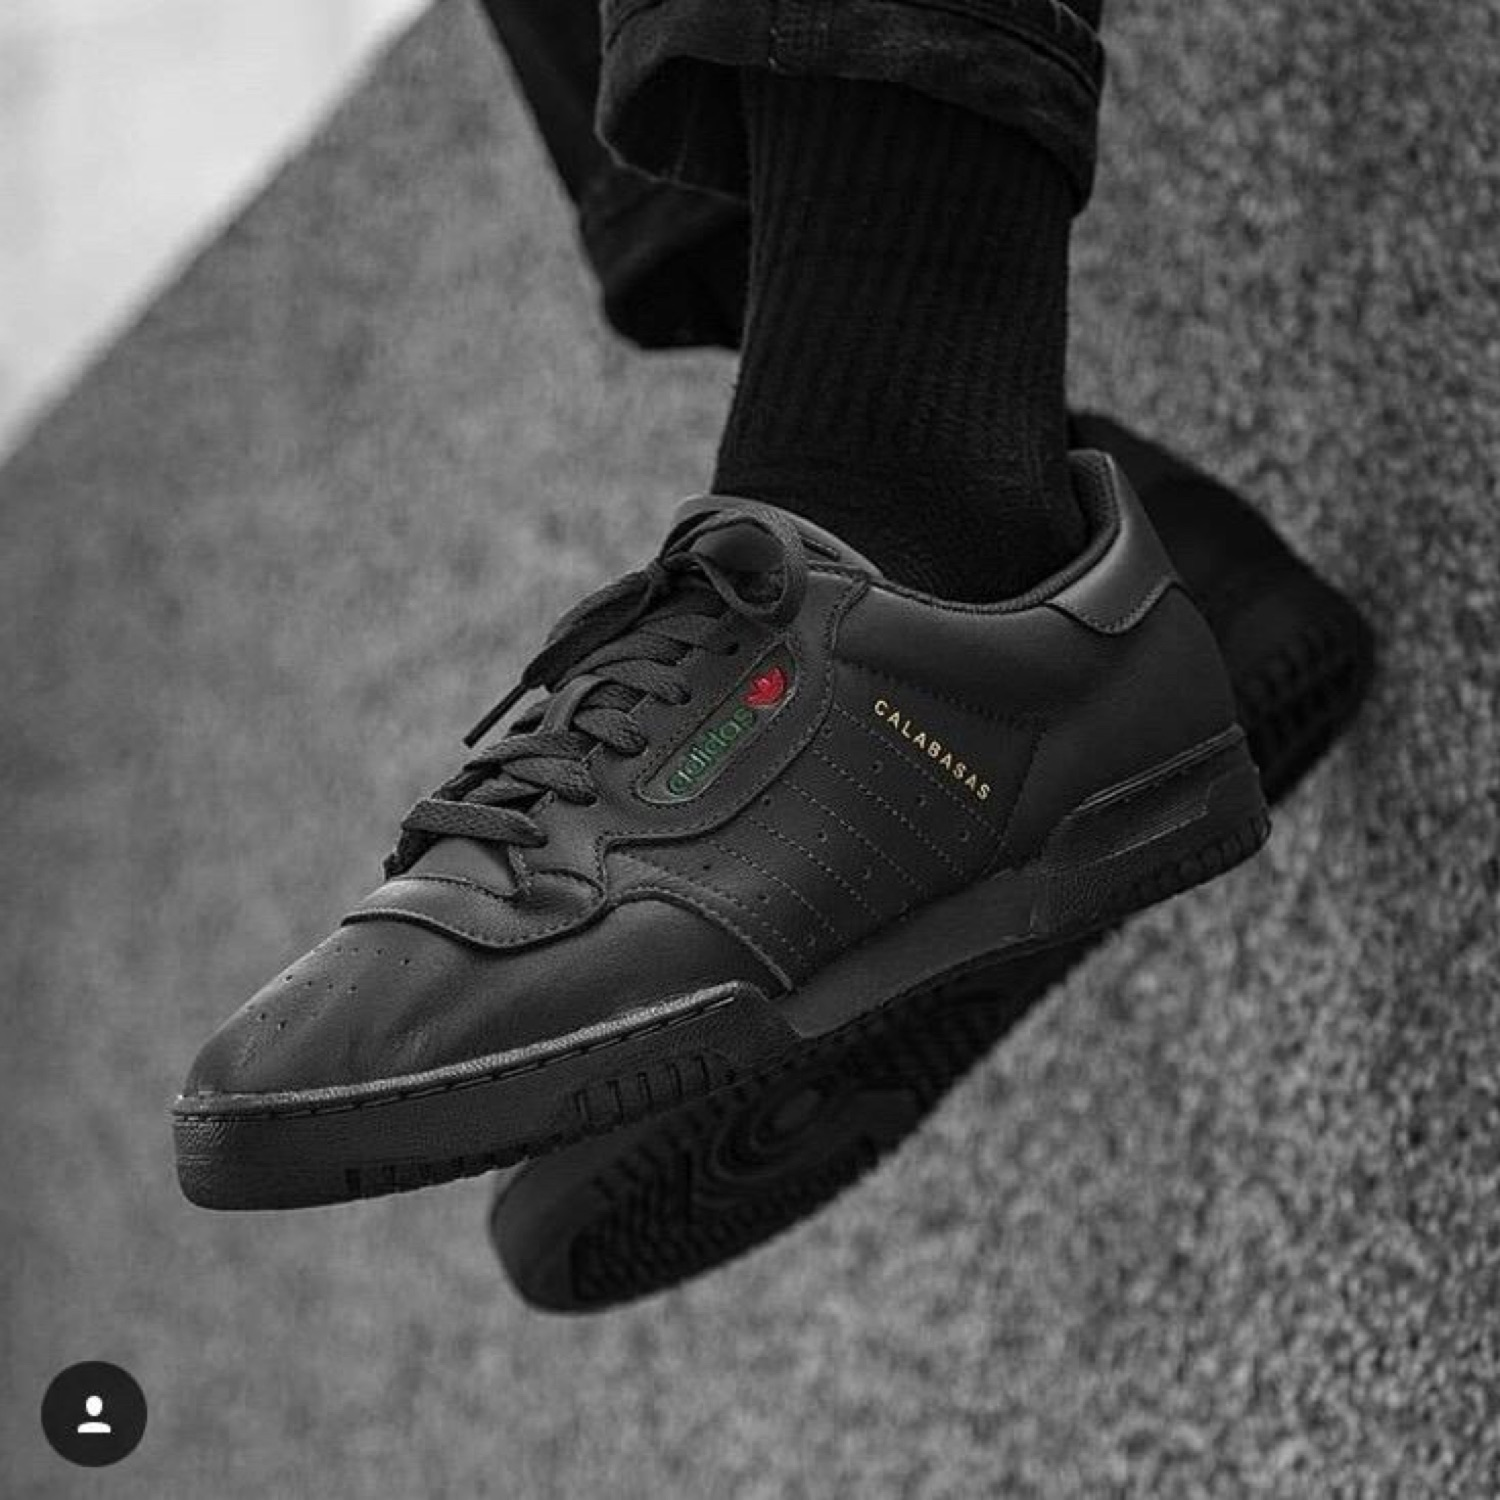 0736d93095be3 Adidas Yeezy Powerphase Calabasas Core Black adidas yeezy powerphase core  black